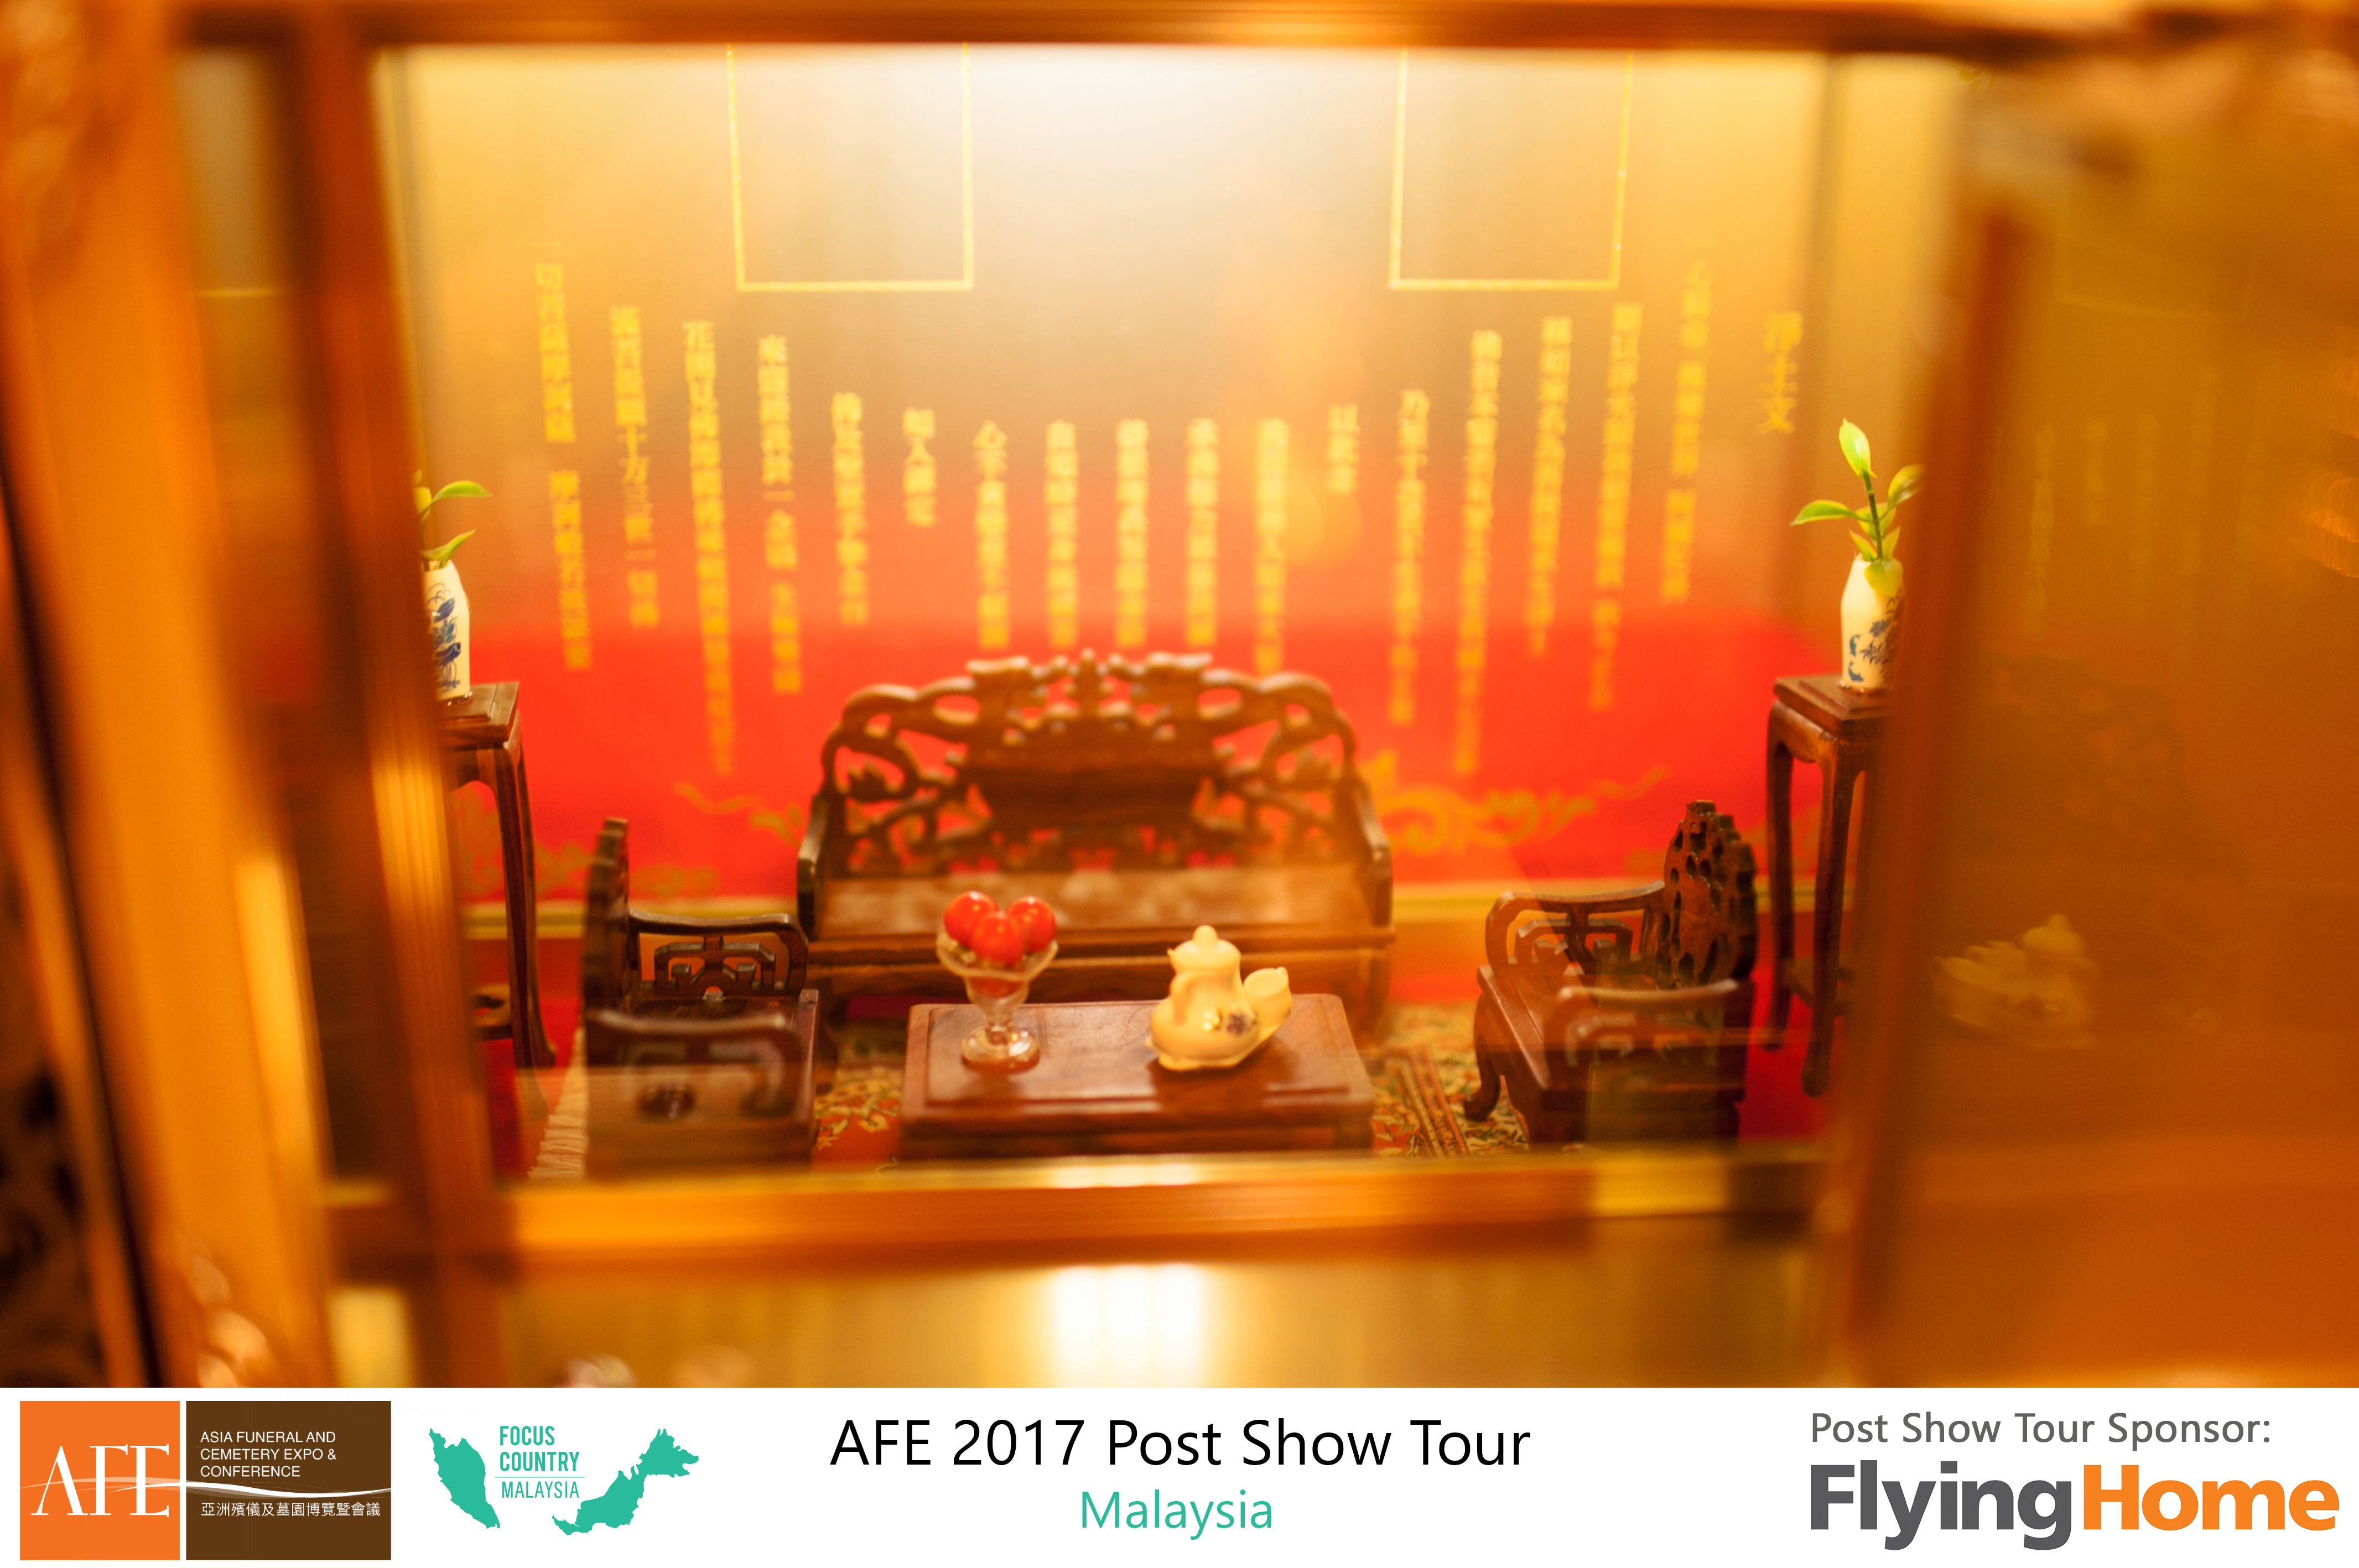 AFE Post Show Tour 2017 Day 2 - 79